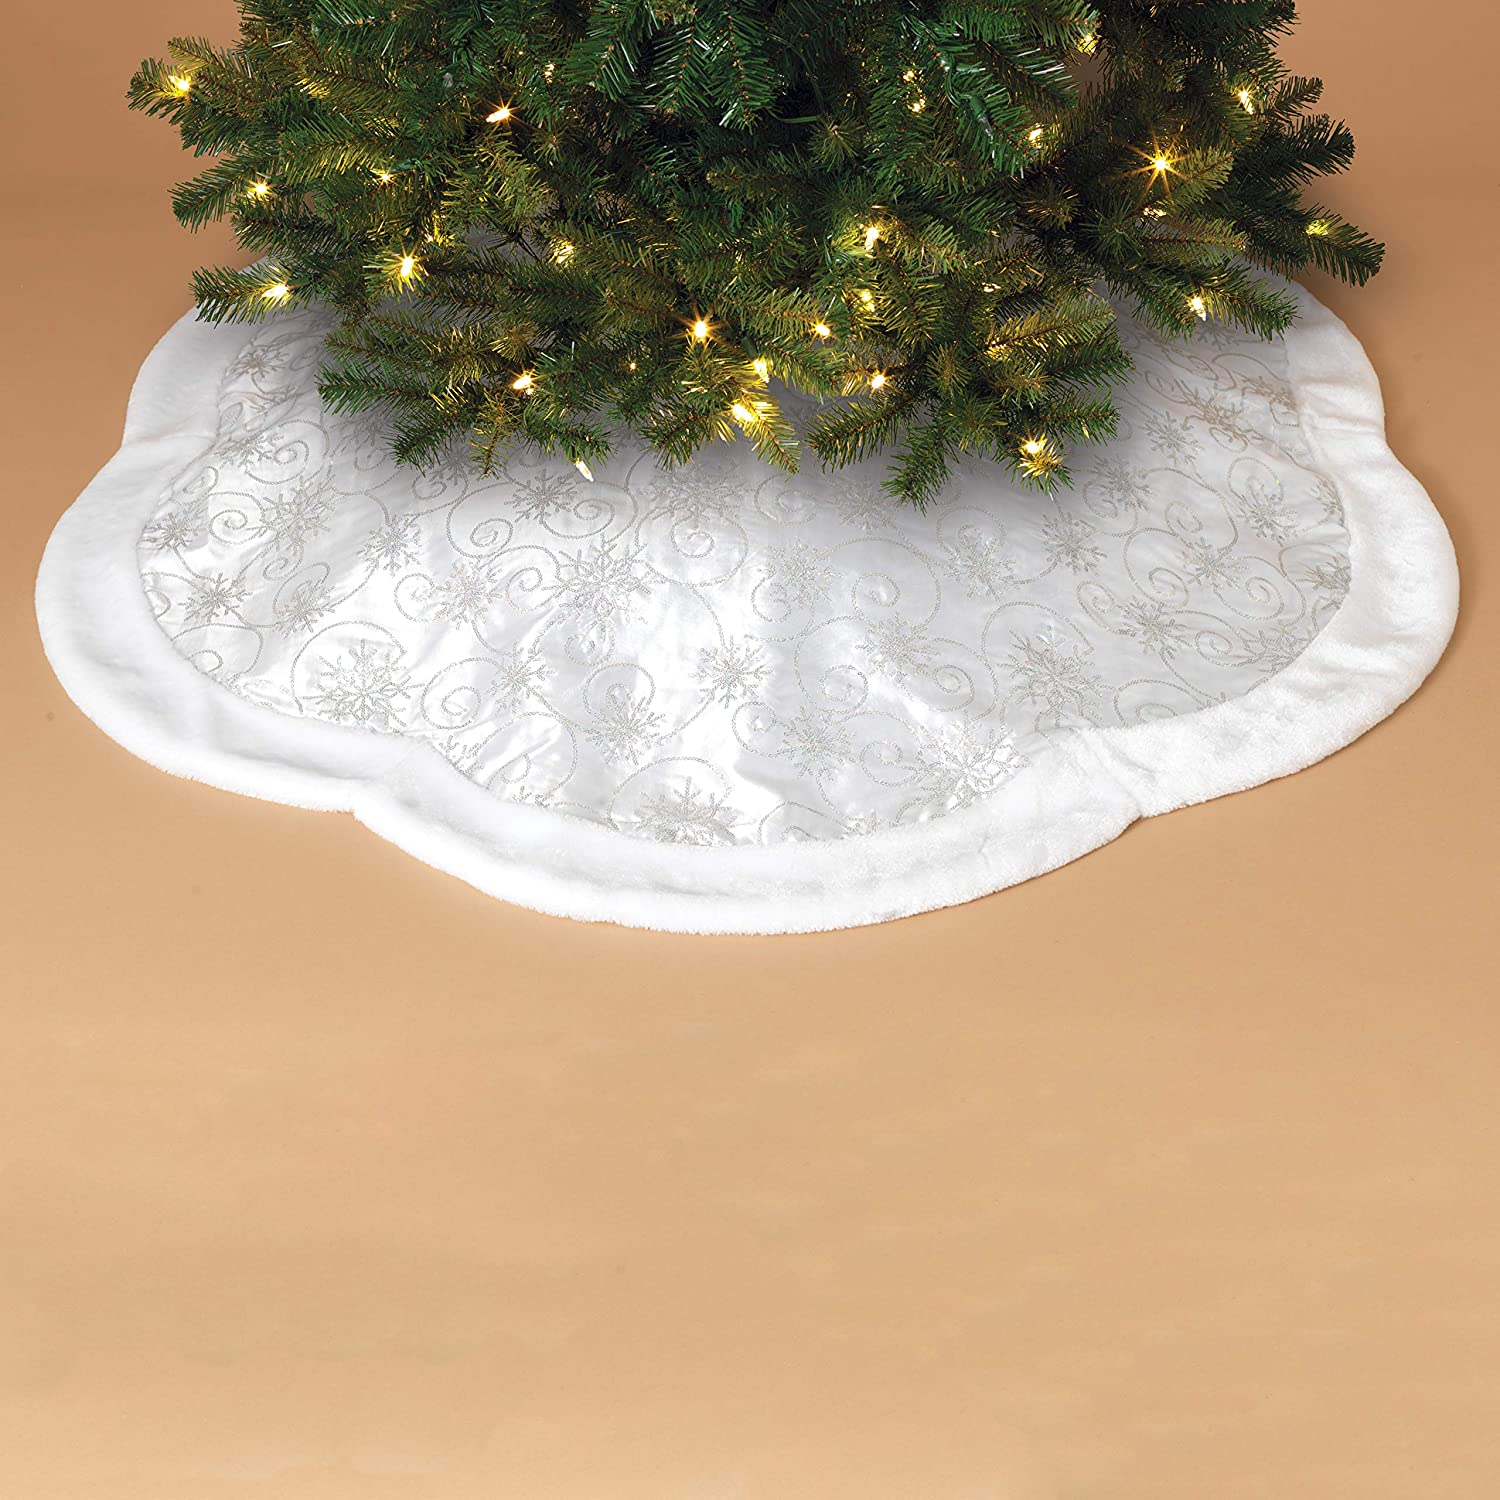 Amazon Com Gerson 48 Inch Scalloped Shaped Sequin Embroidered Tree Skirt With Faux Fur Border White Home Kitchen